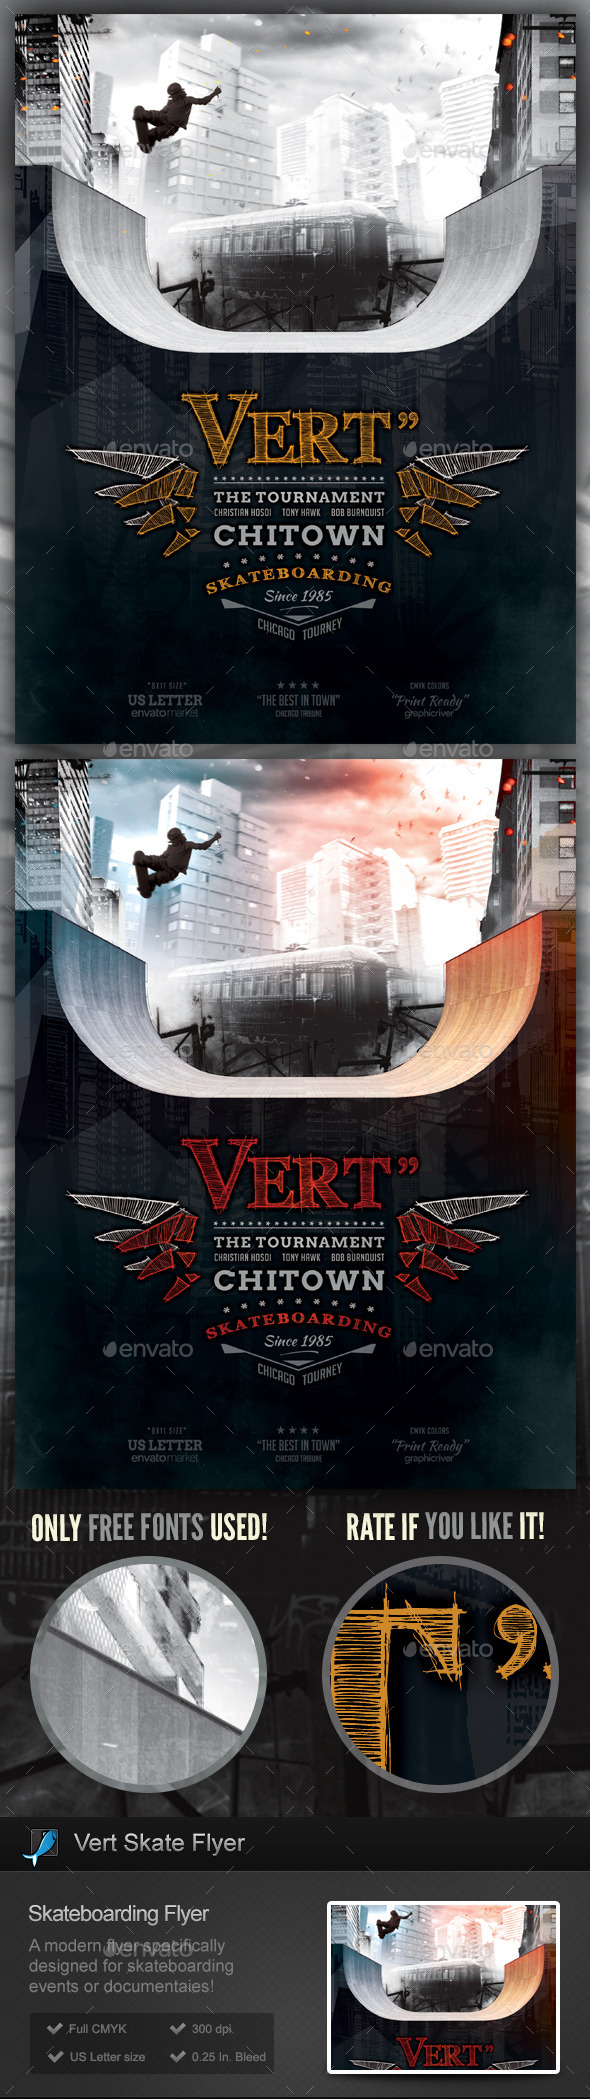 Vert Skate - Skateboarding Flyer Template - Sports Events